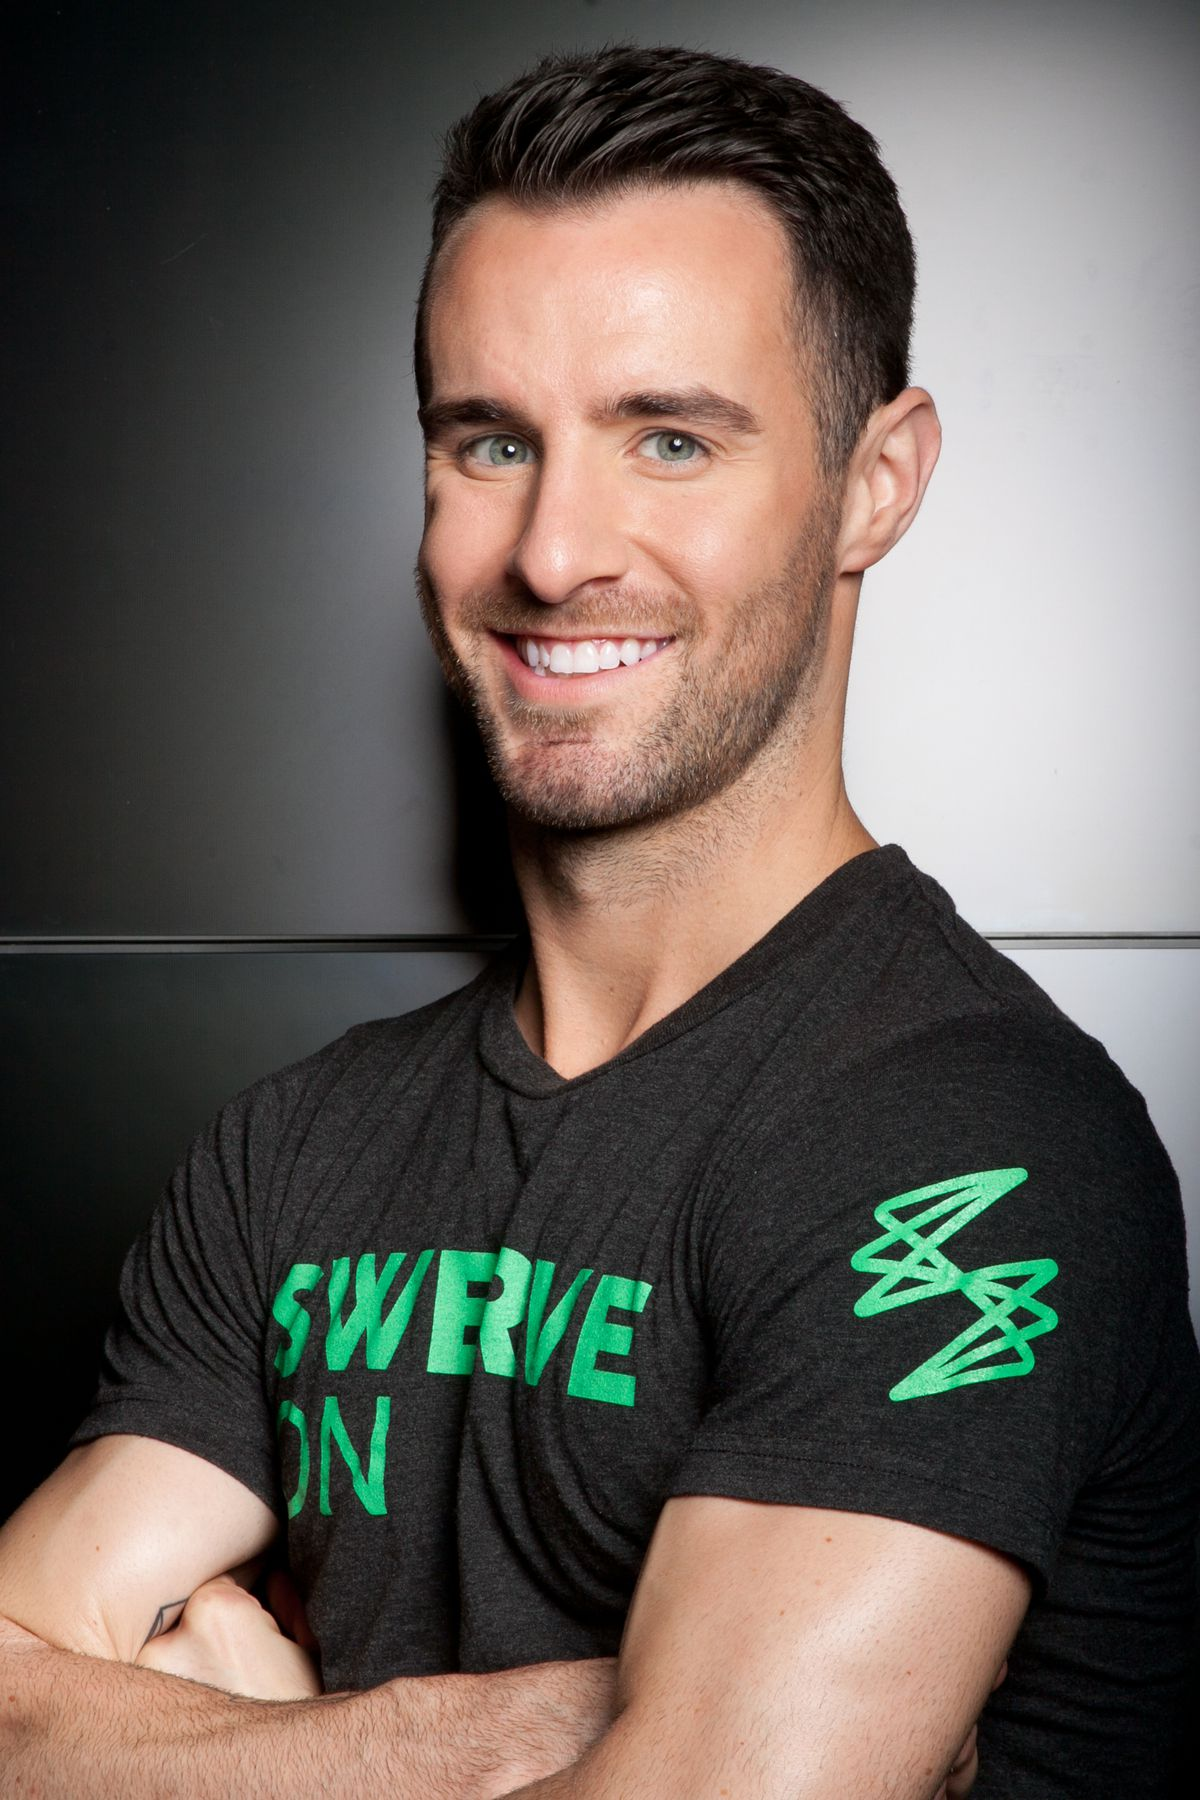 NYC's Hottest Trainer 2015 Contestant #1: Seth Maynard, Swerve Fitness NEEDS PHOTOS